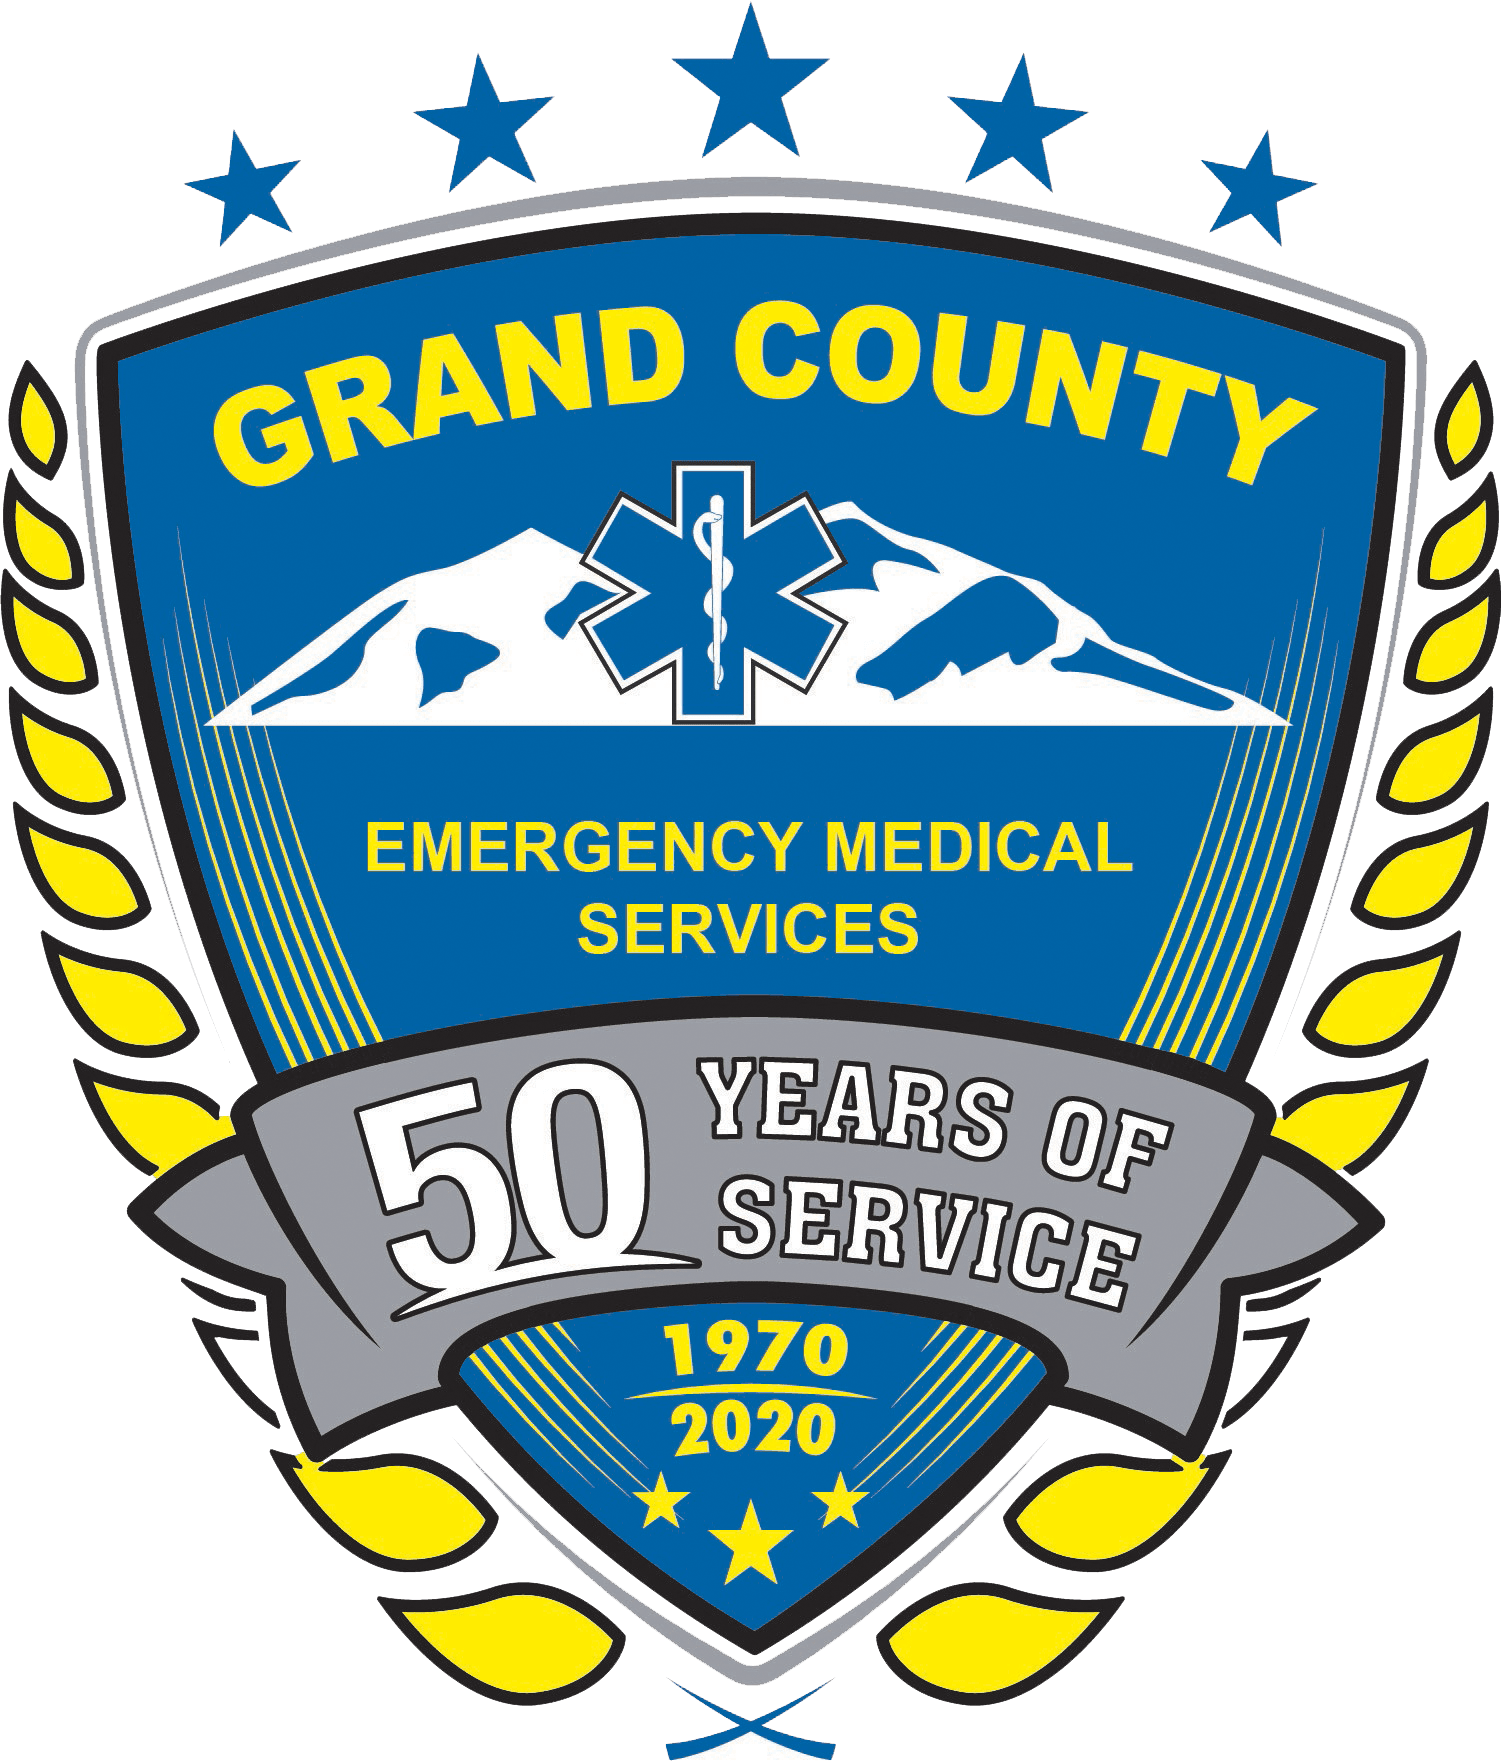 Emergency Medical Services | Grand County, CO - Official Website